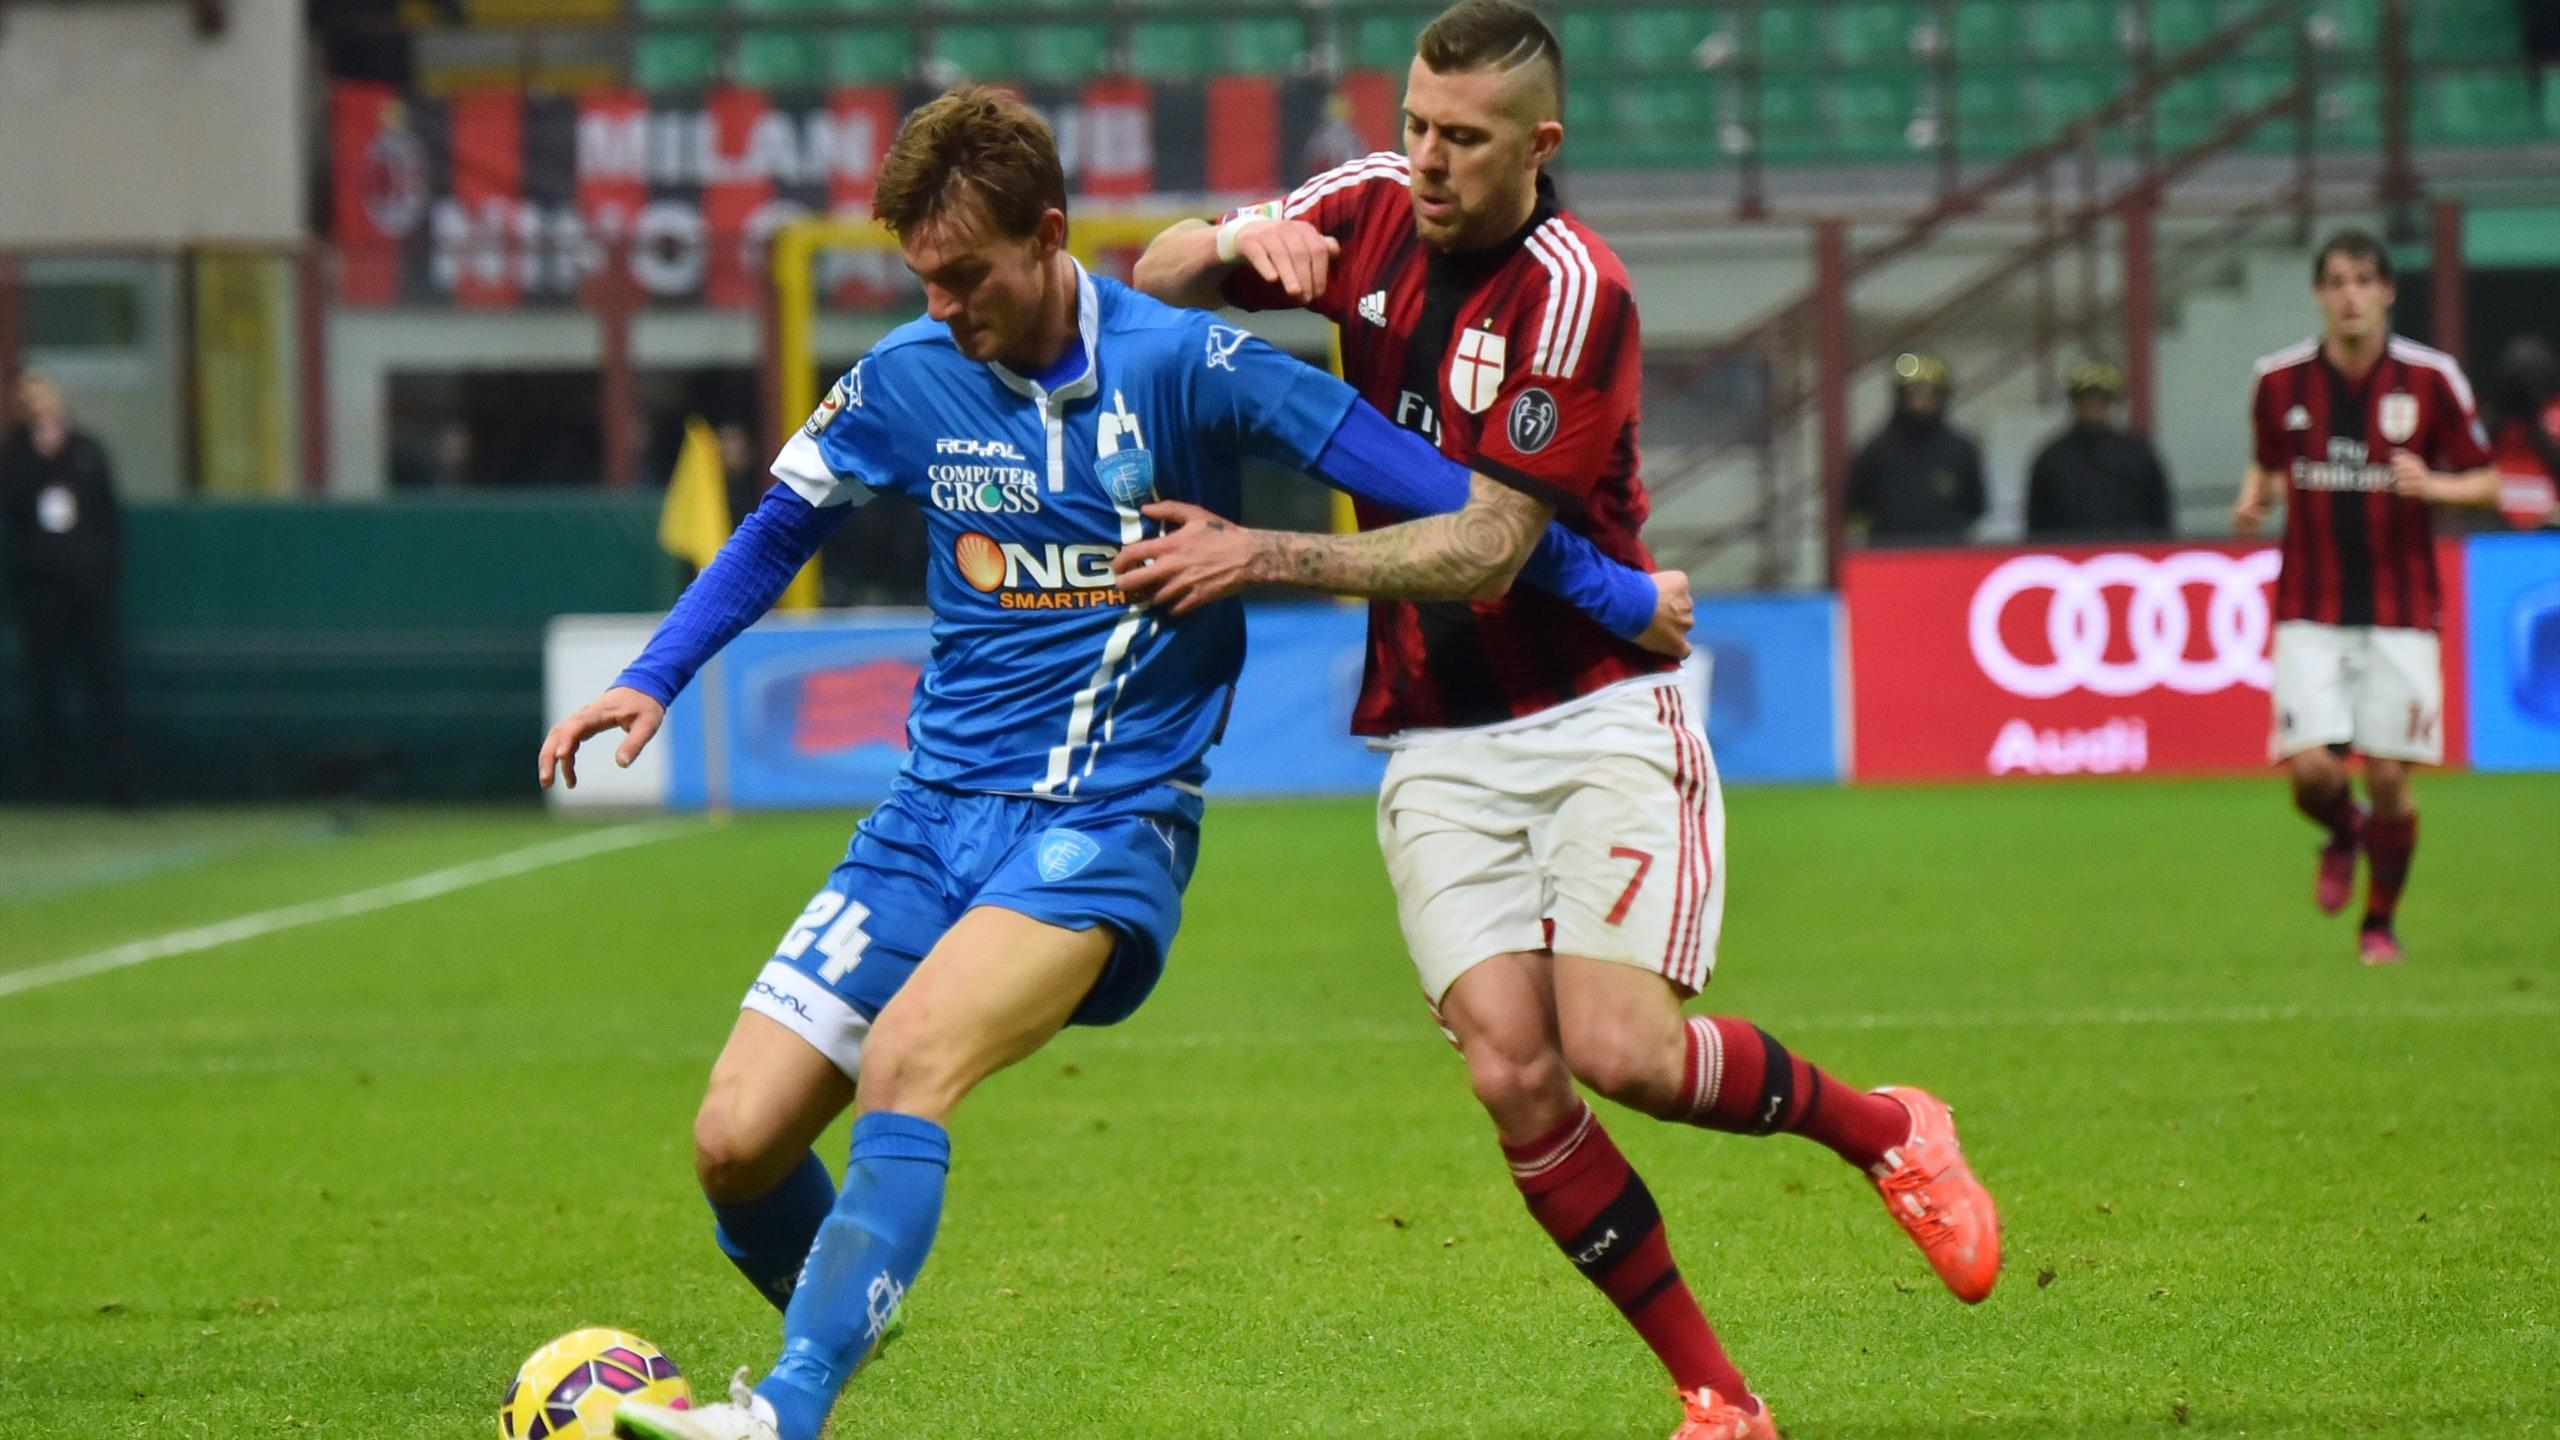 AC Milan's midfielder from France Jeremy Menez (R) fights for the ball with Empoli's defender Daniele Rugani